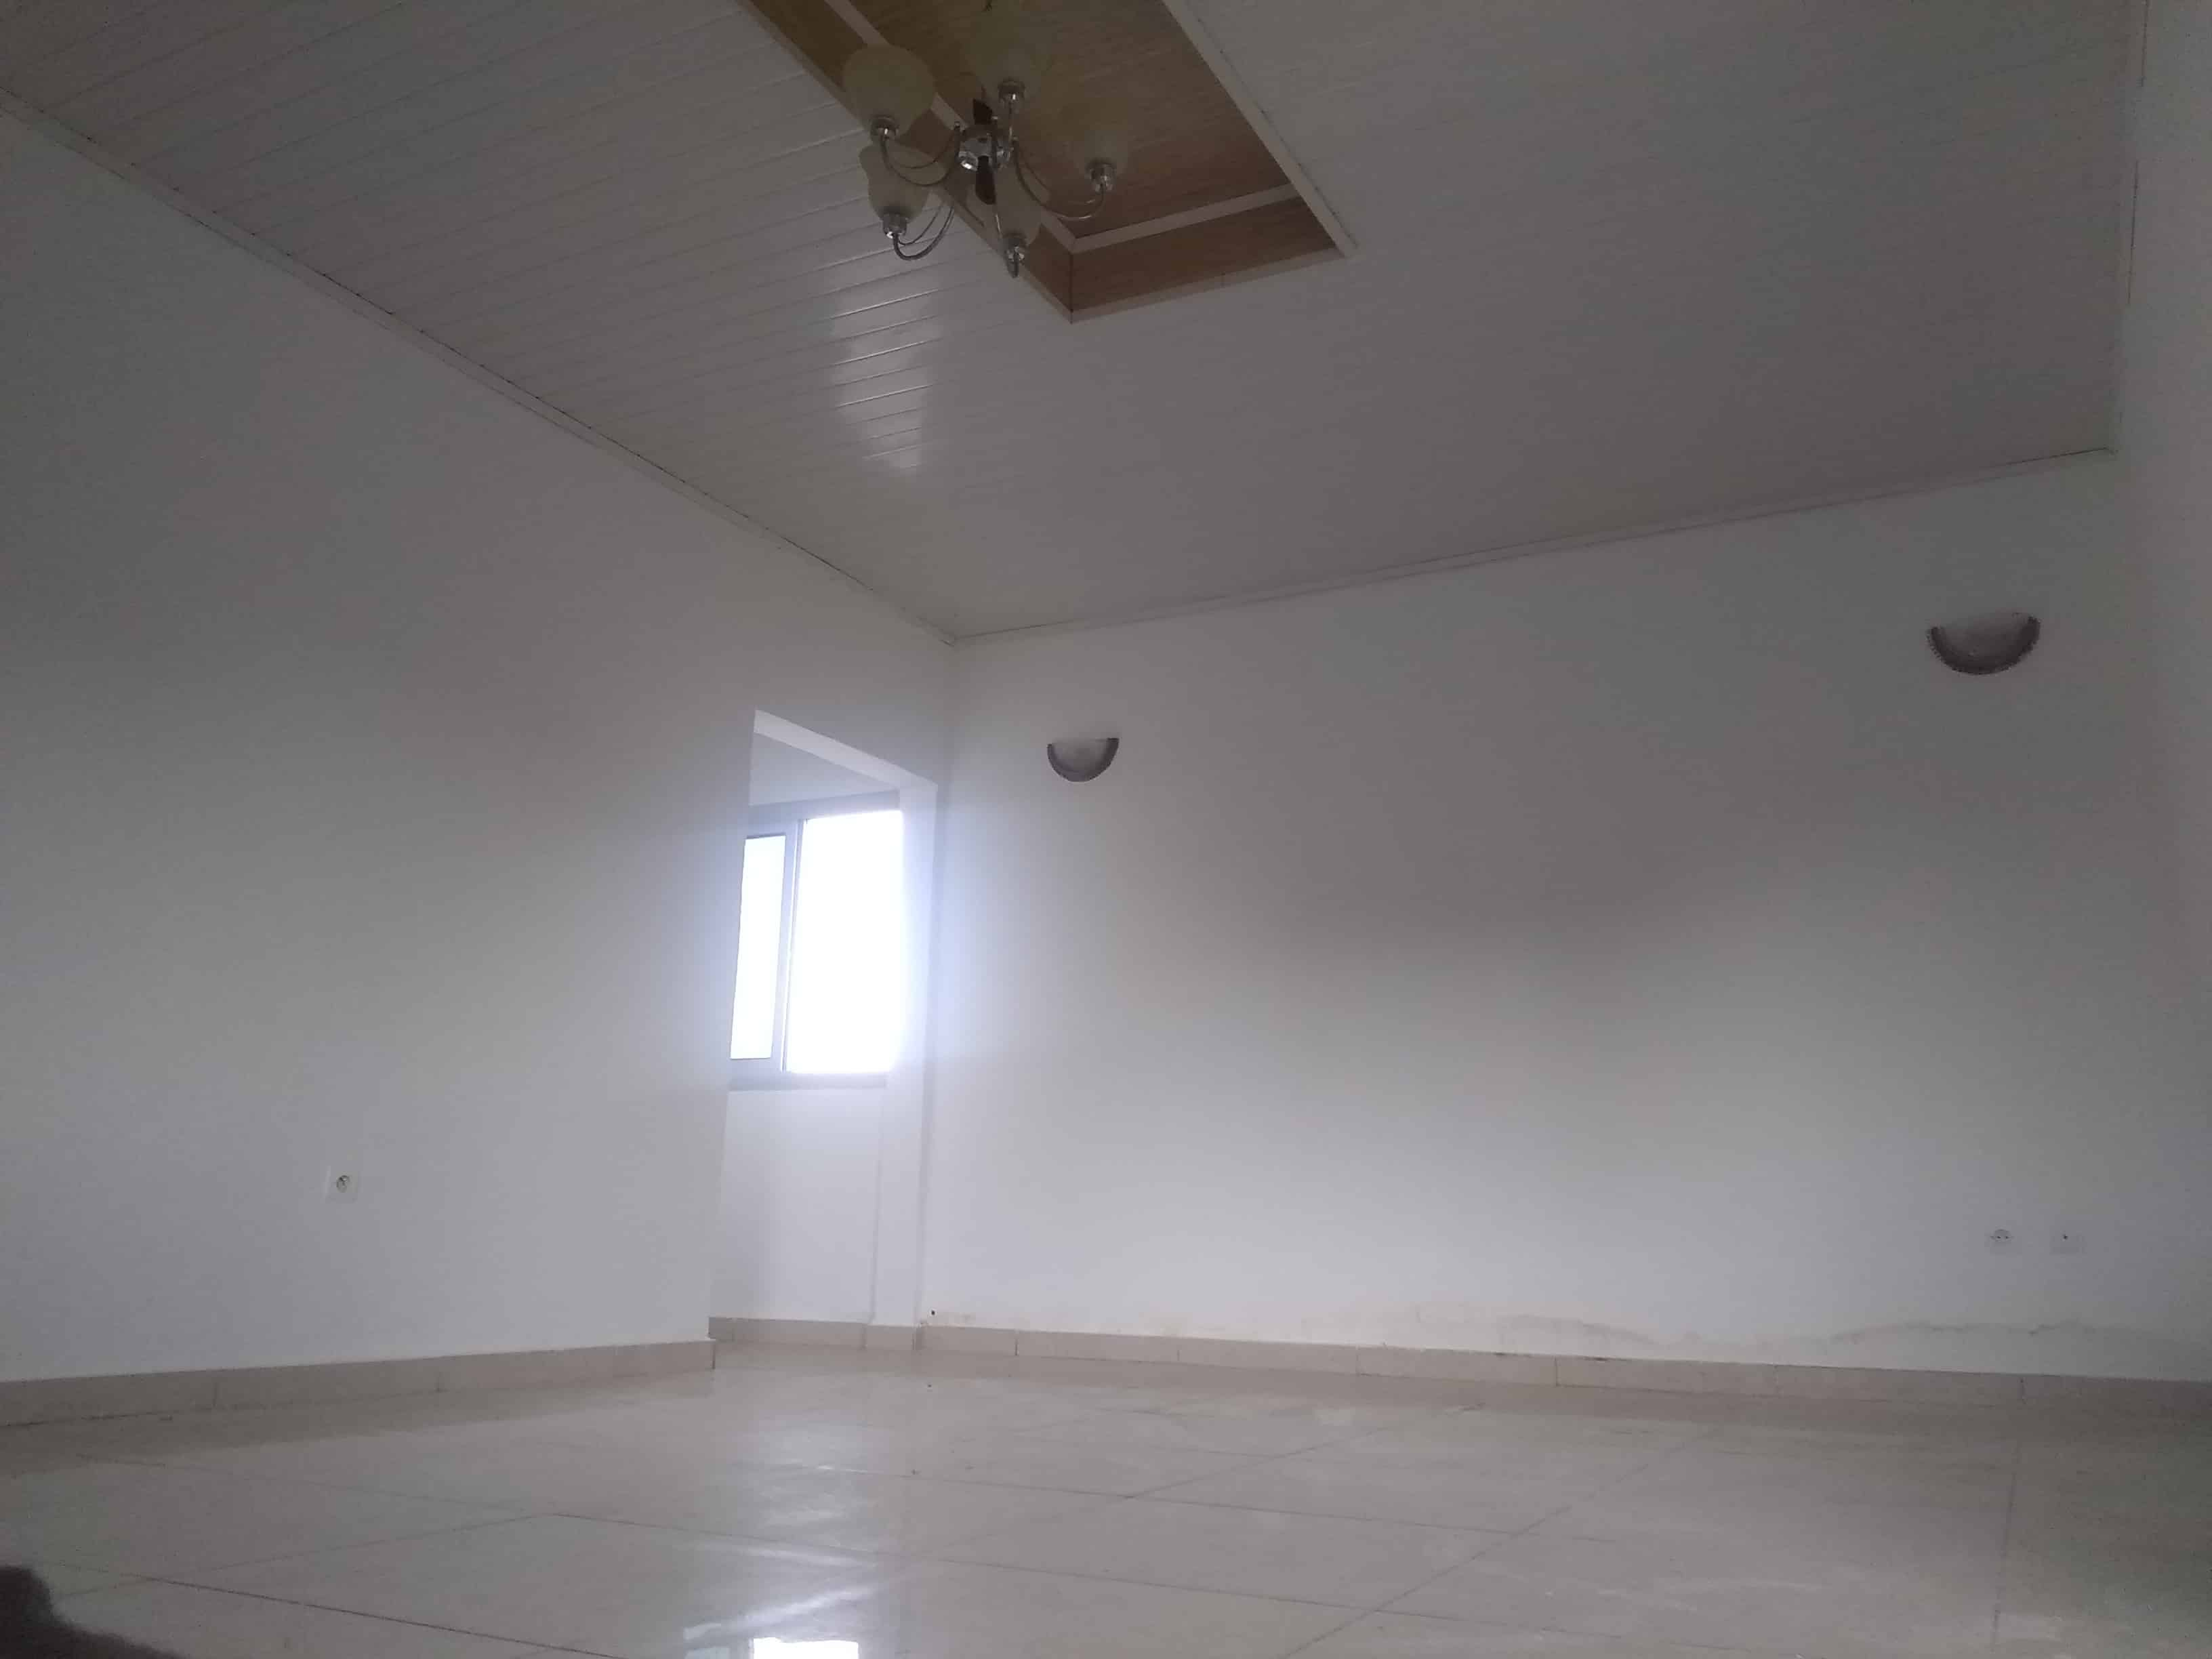 Apartment to rent - Douala, Logpom, Commissariat central N 4 - 1 living room(s), 2 bedroom(s), 1 bathroom(s) - 110 000 FCFA / month